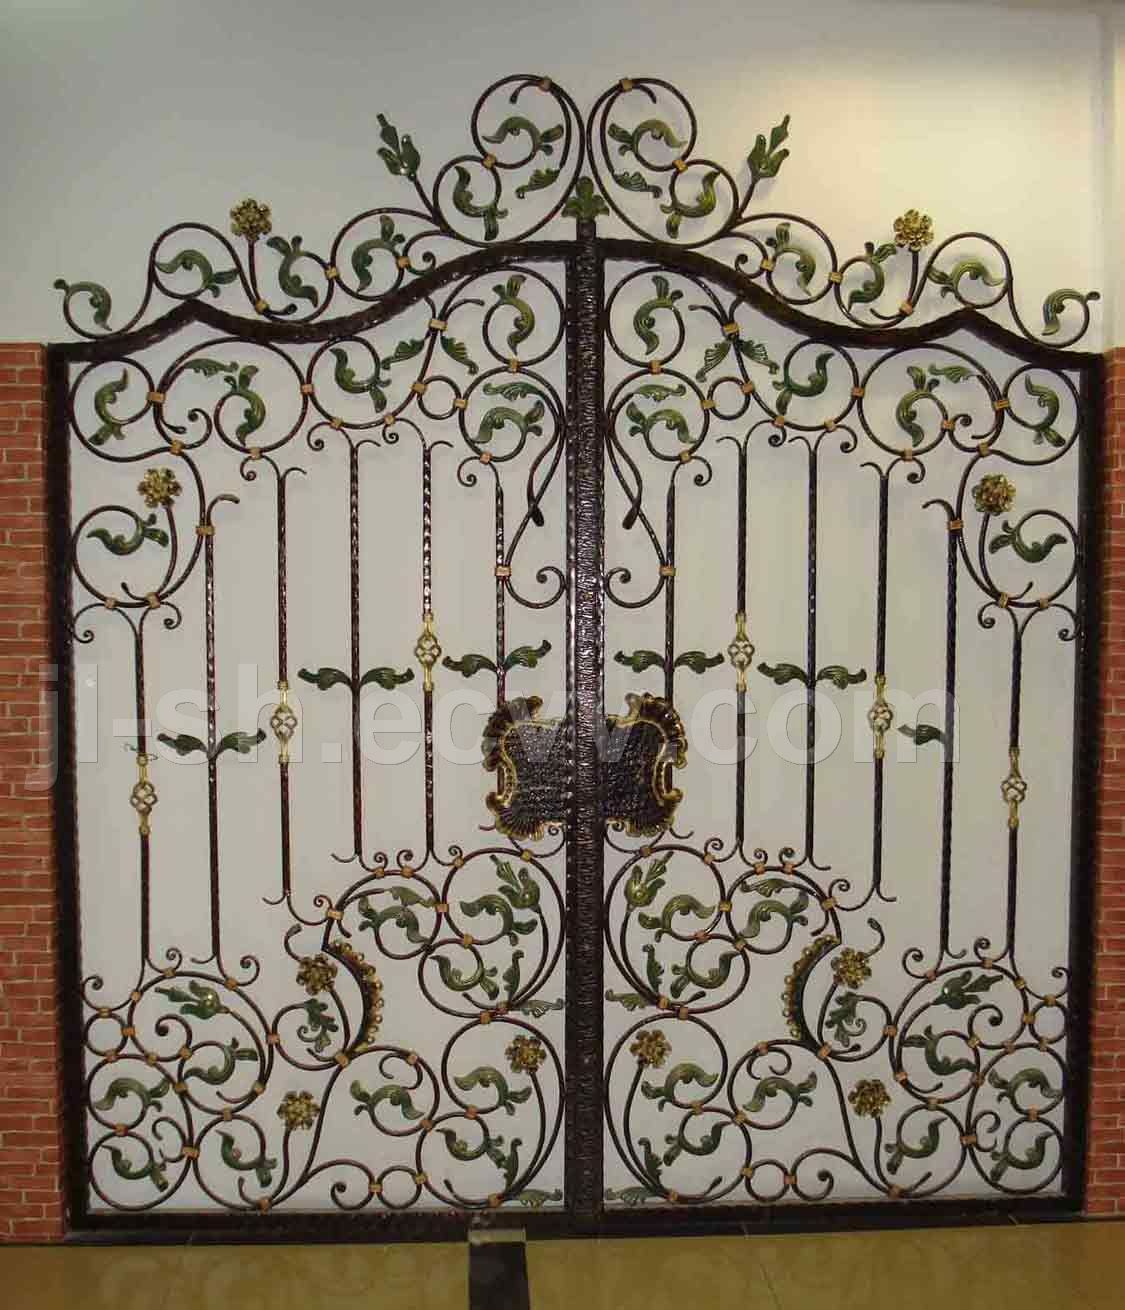 Dealin:-iron gate,iron